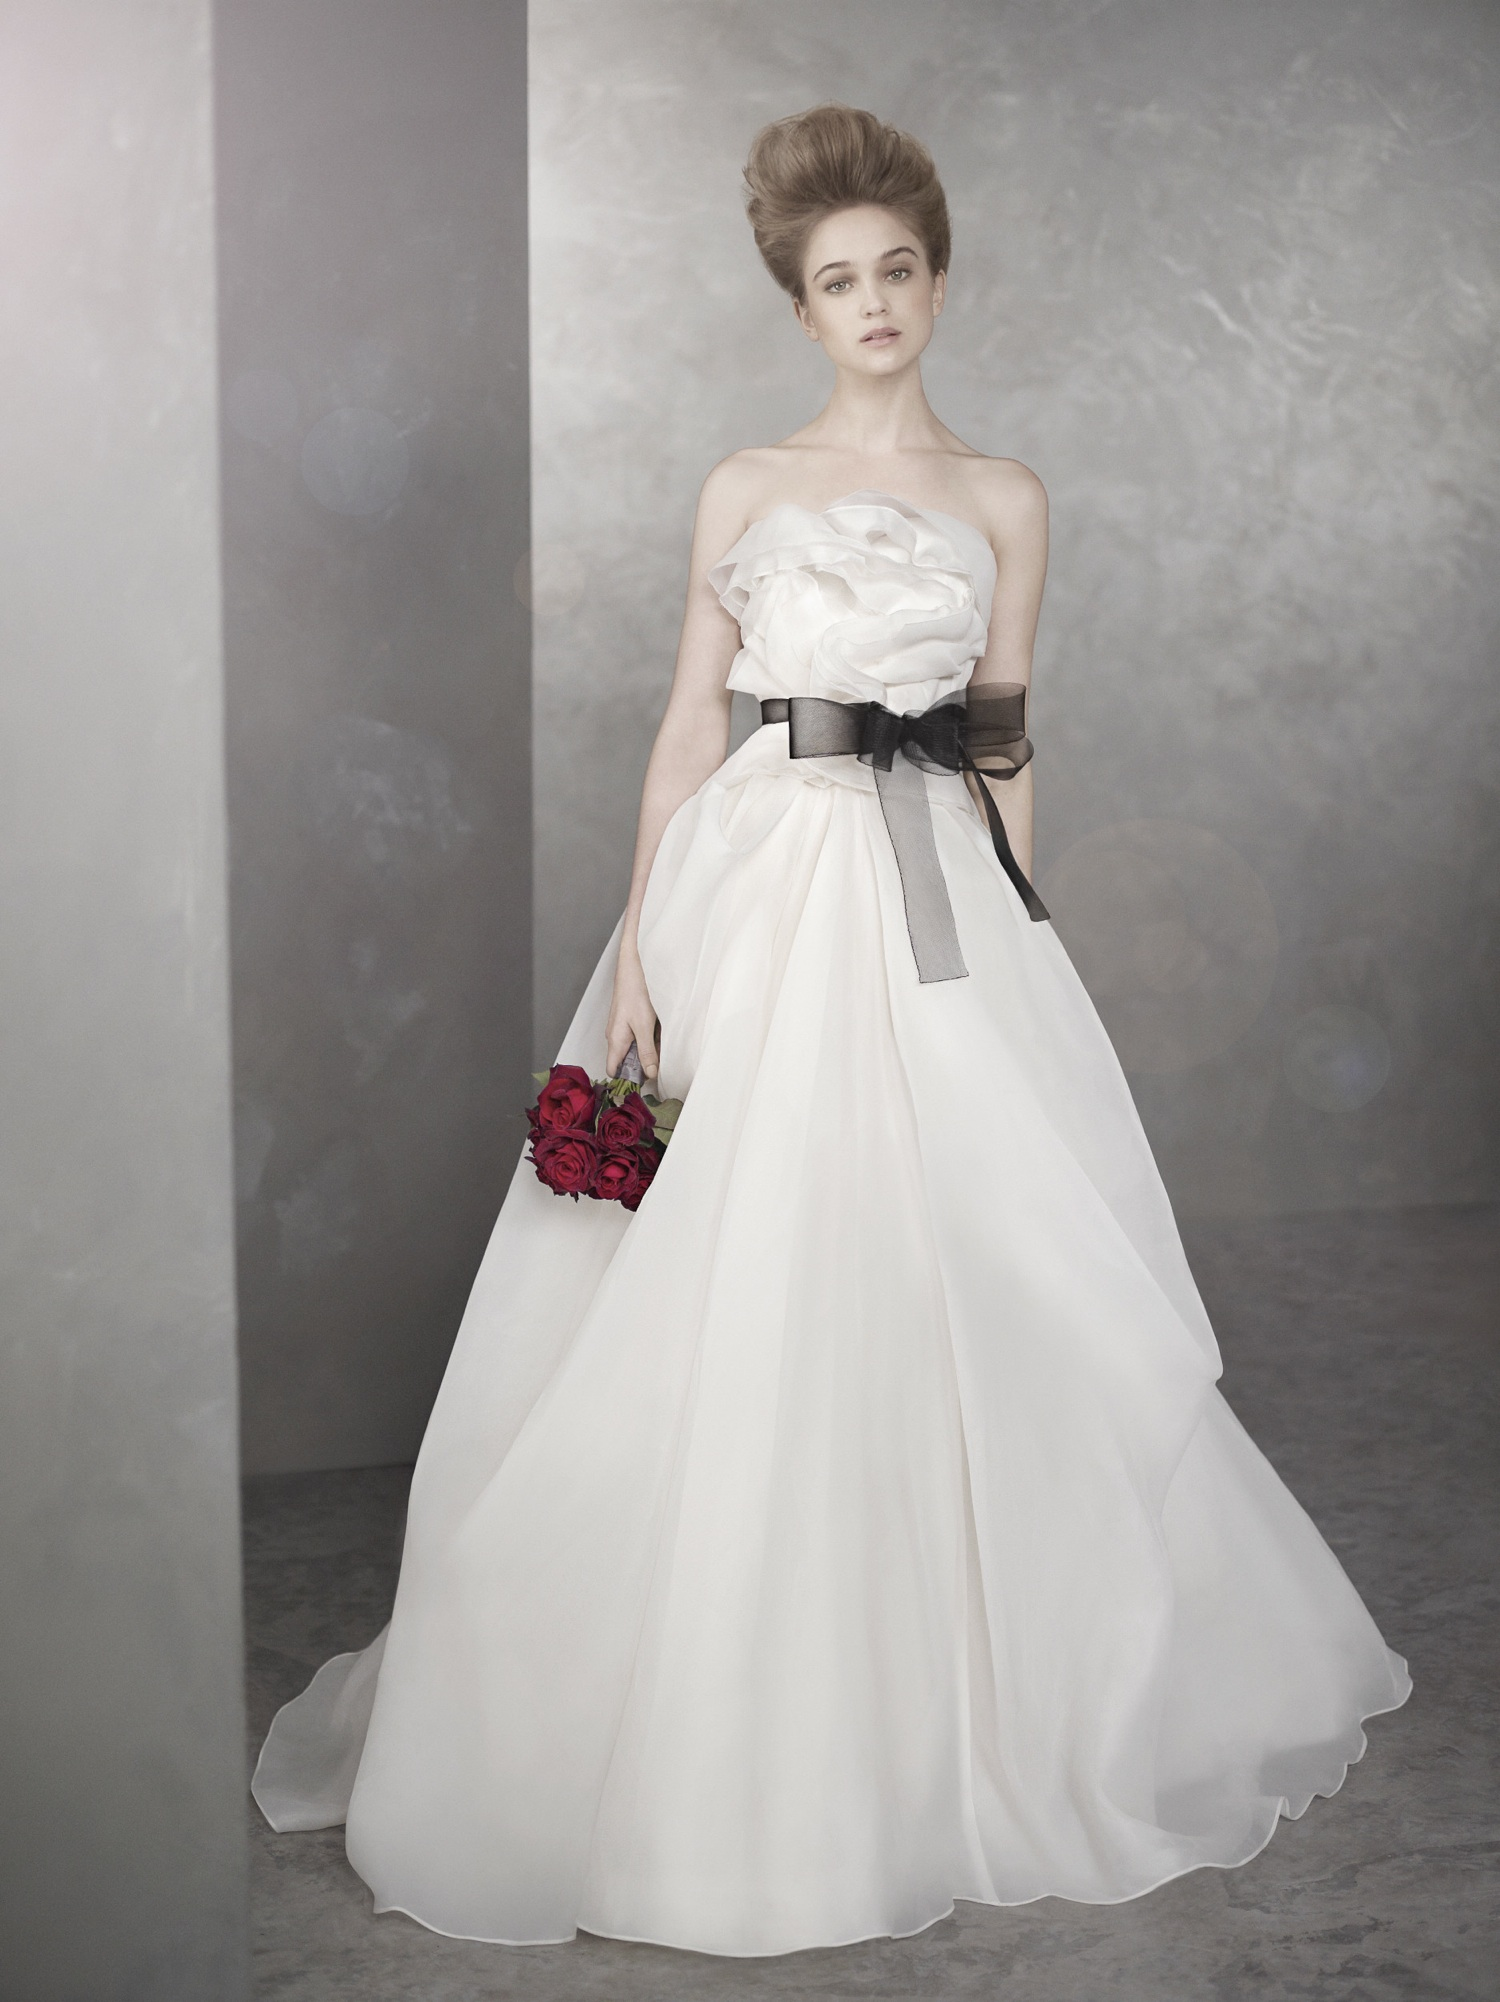 Romantic white by vera wang wedding dress with black sash for Vera wang used wedding dress